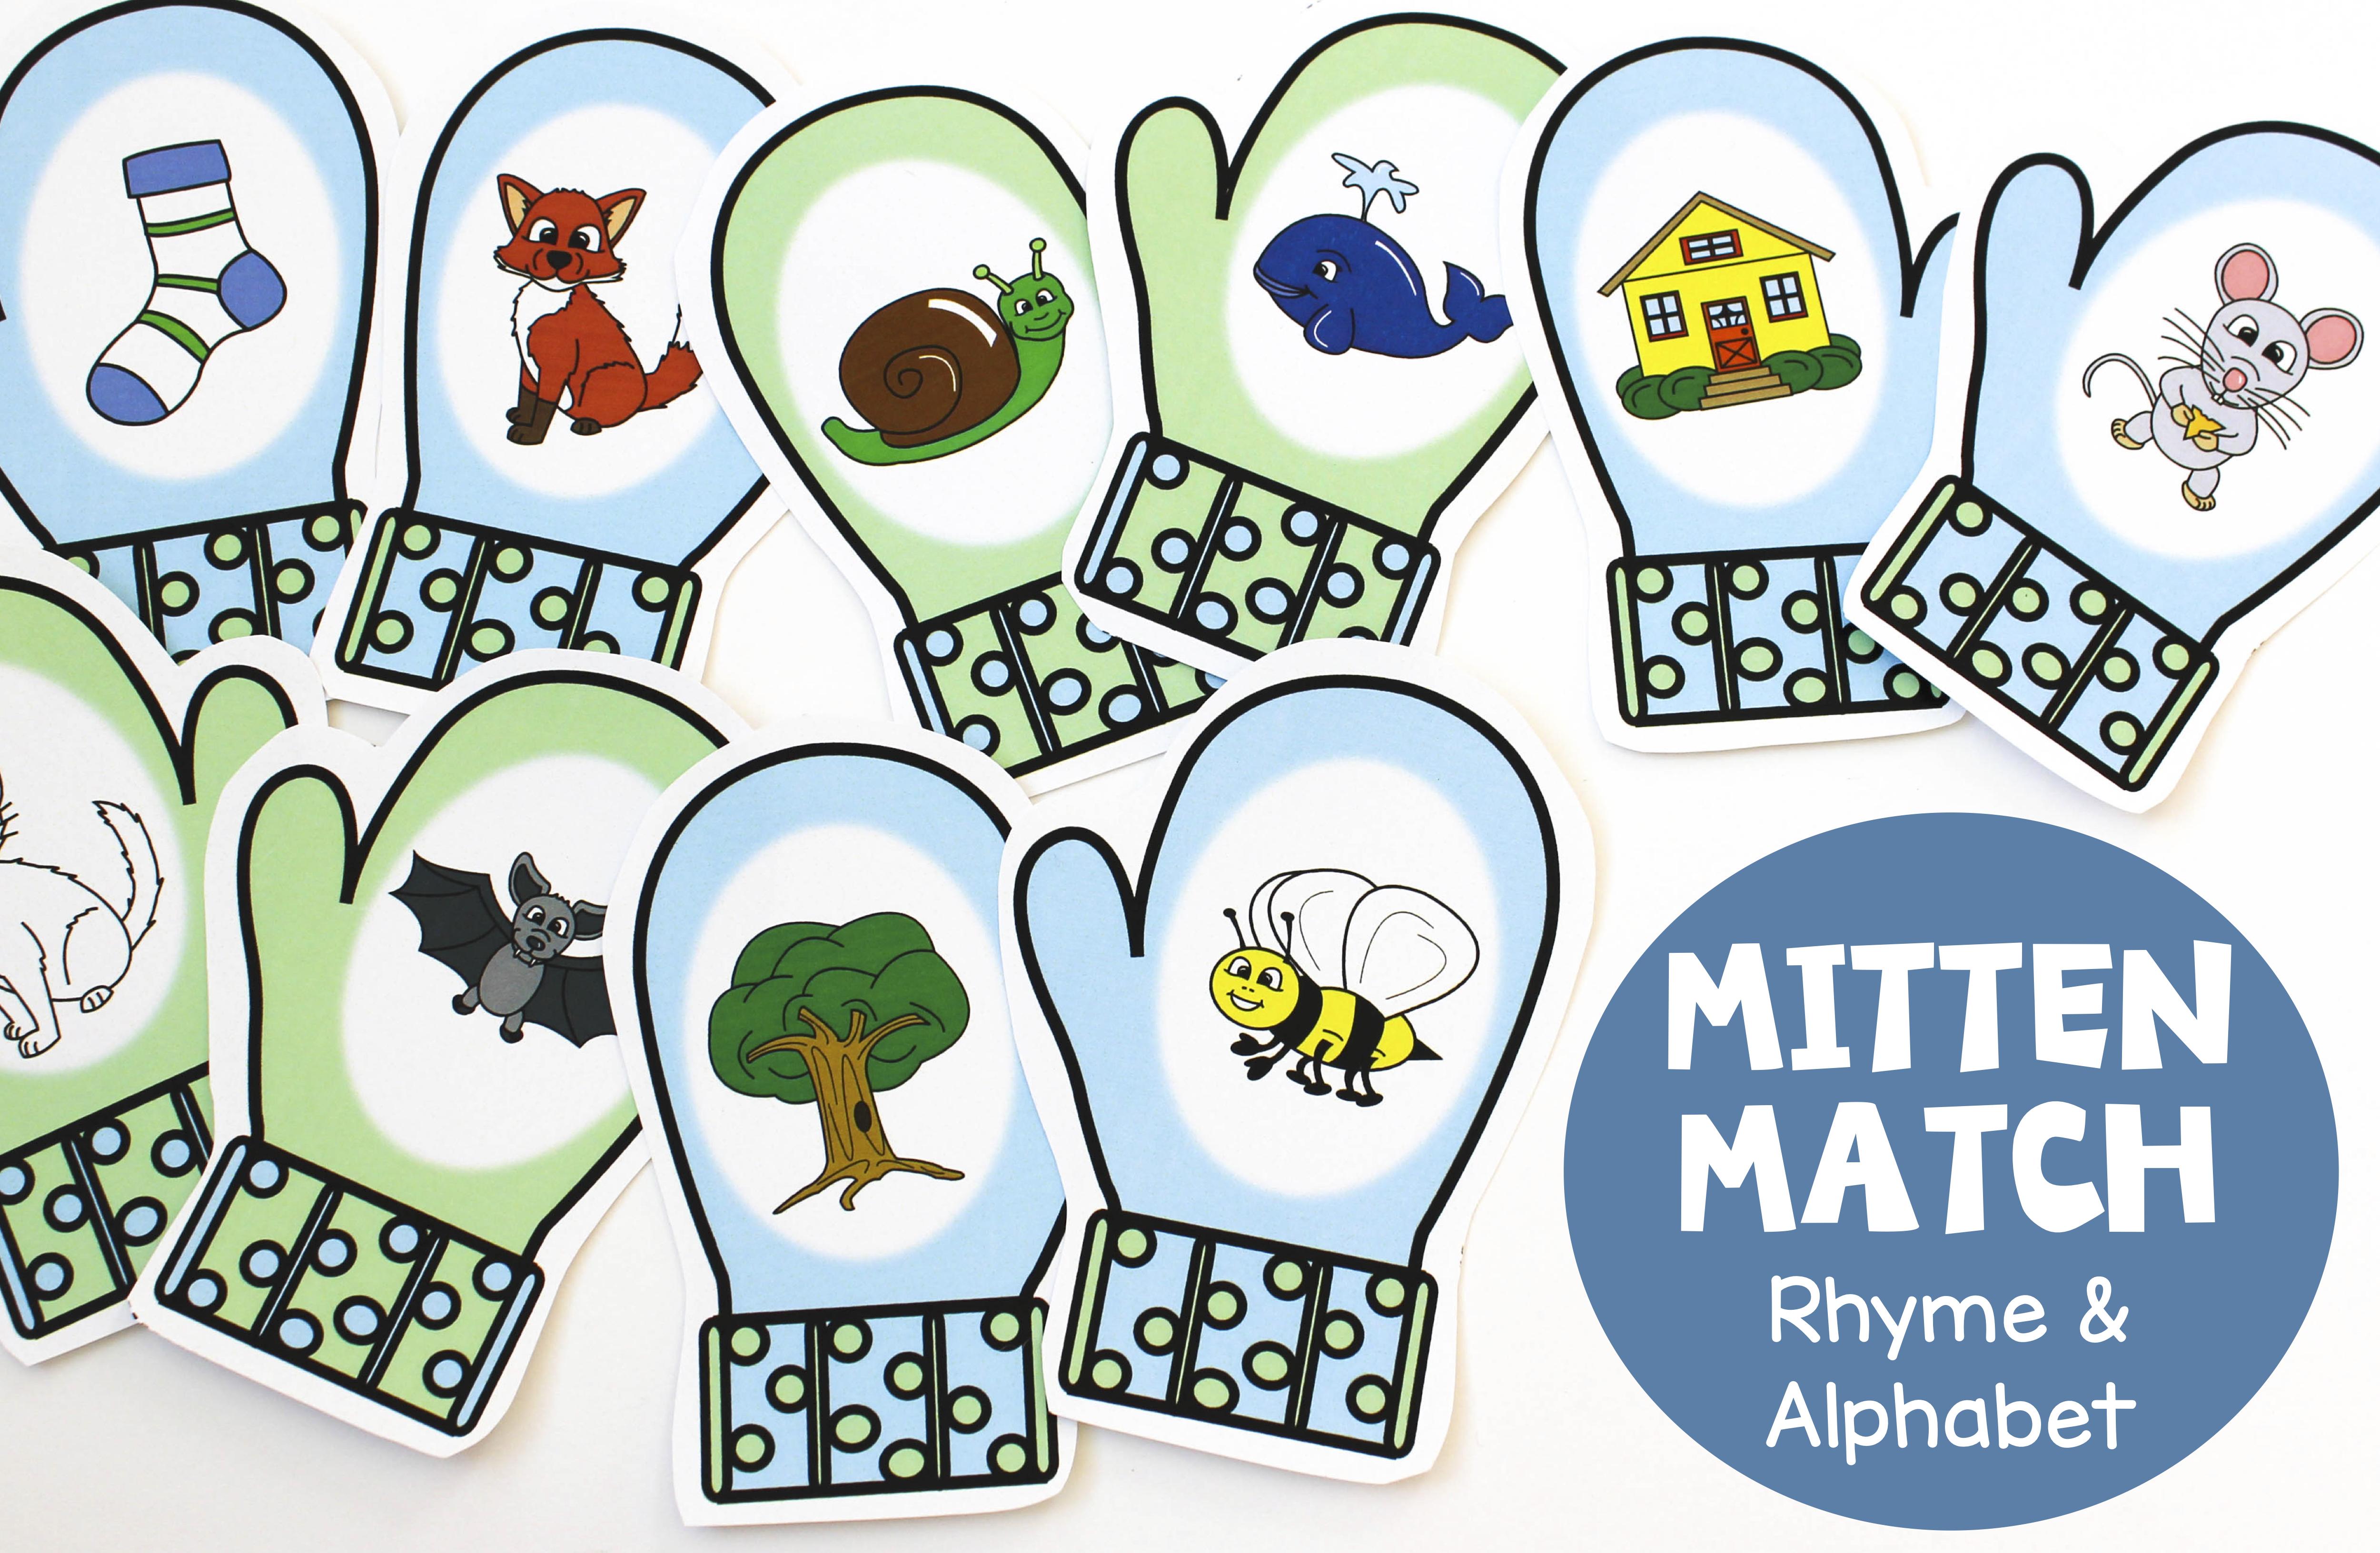 Mitten Match Activities For Rhyme And Letters Amp Sounds